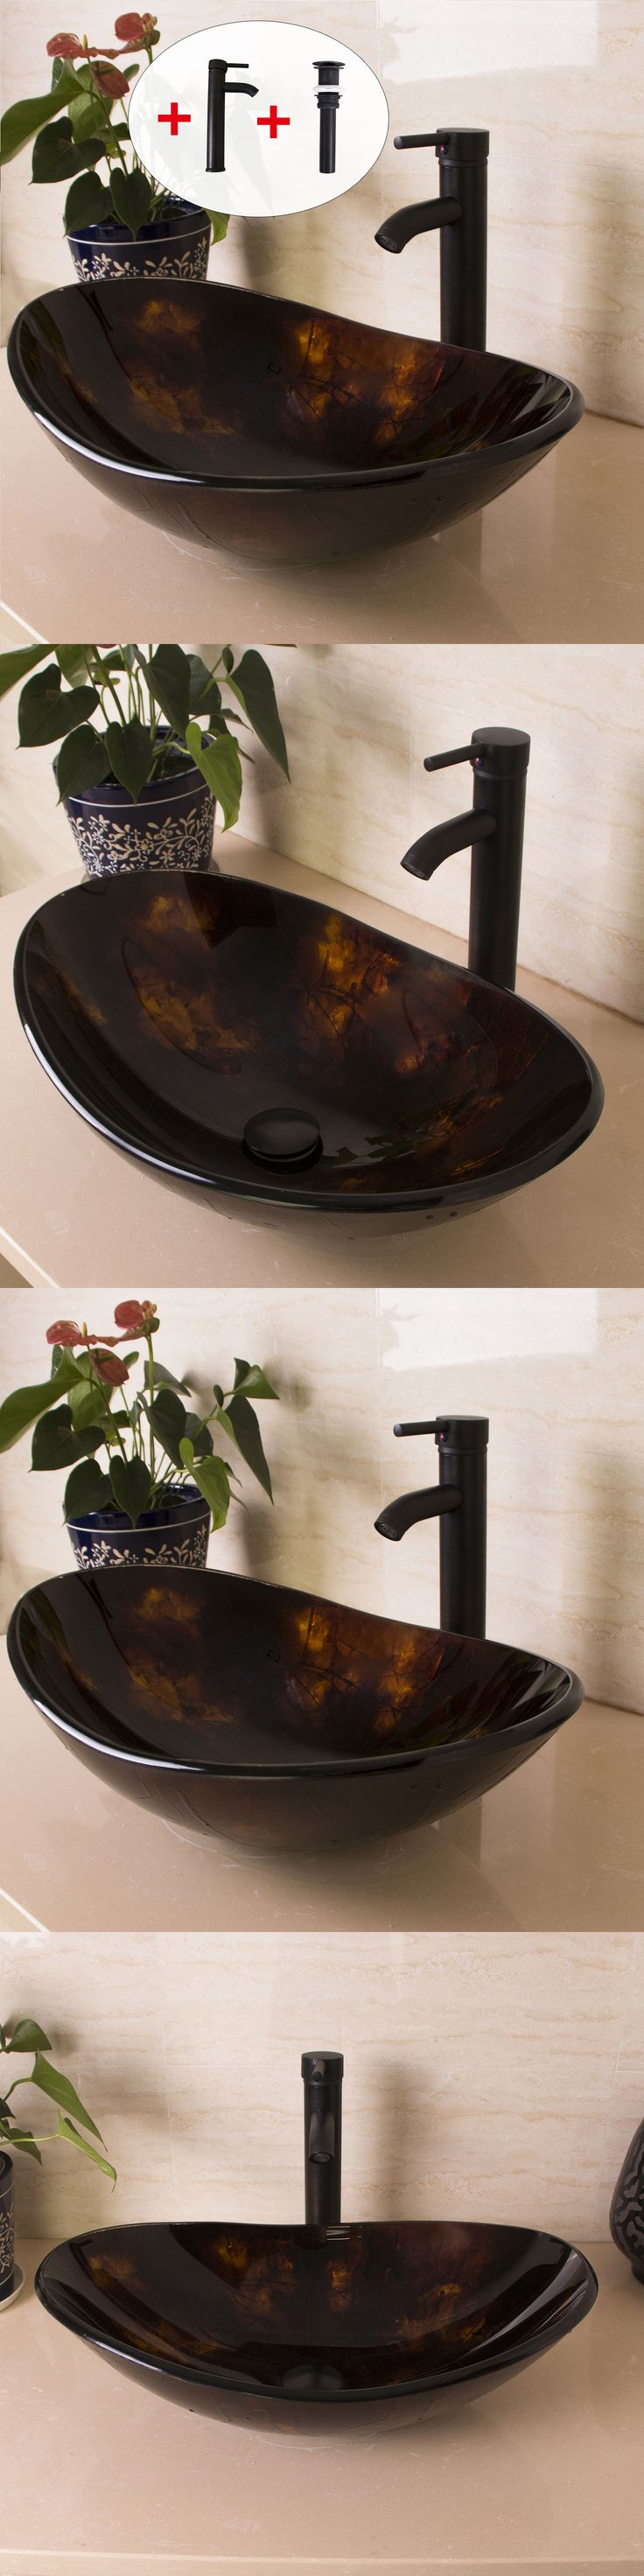 Sinks 71283 Bathroom Oval Glass Vessel Sink Oil Rubbed Bronze Faucet Popandup Drain Combo Set